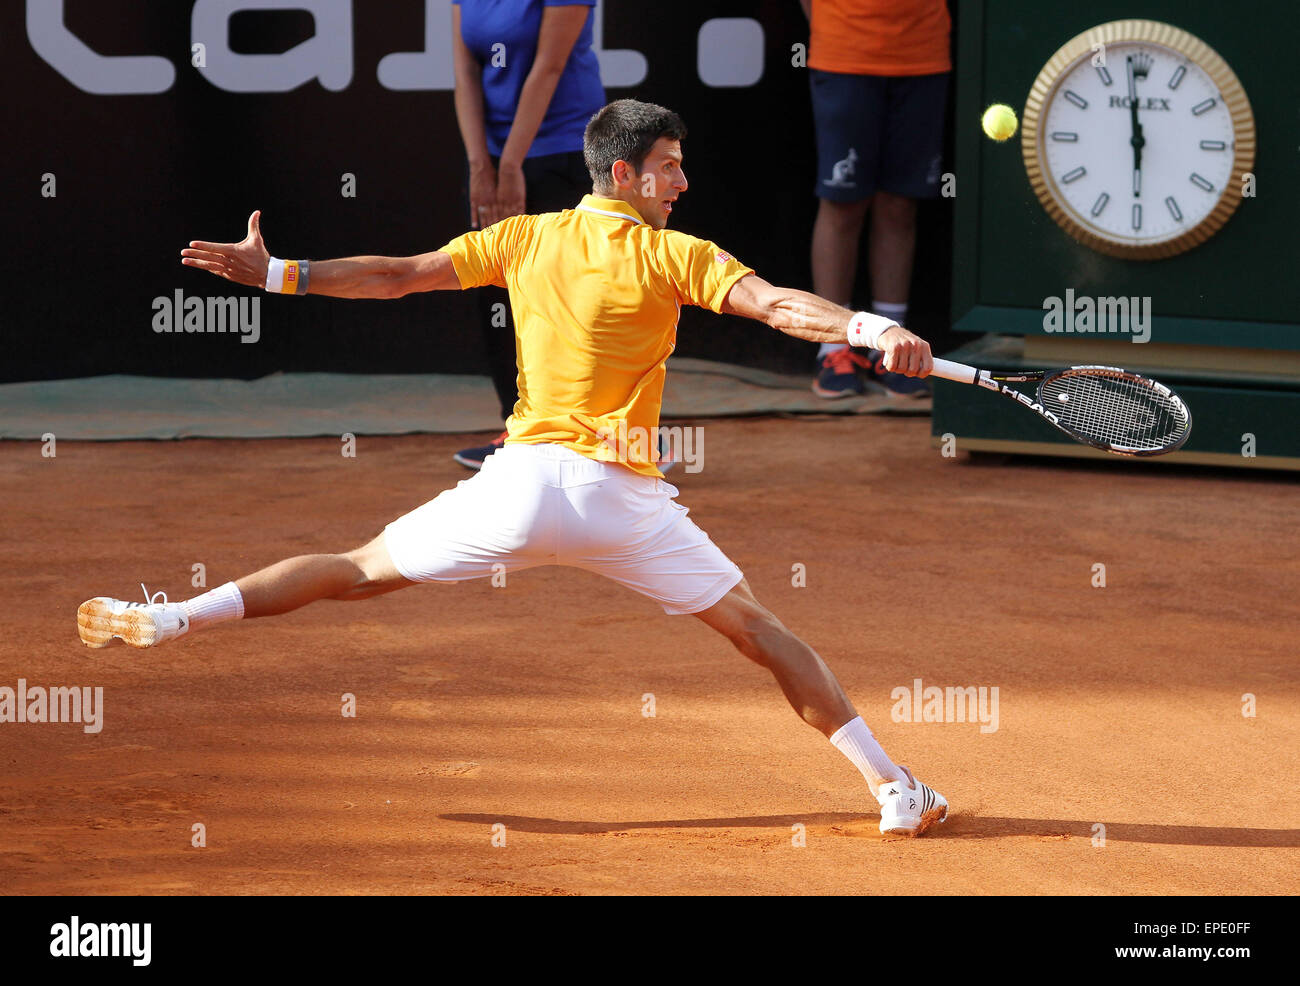 Rome, Italy. 17th May, 2015. Novak Djokovic of Serbia during the singles final match against Swiss Roger Federer - Stock Image